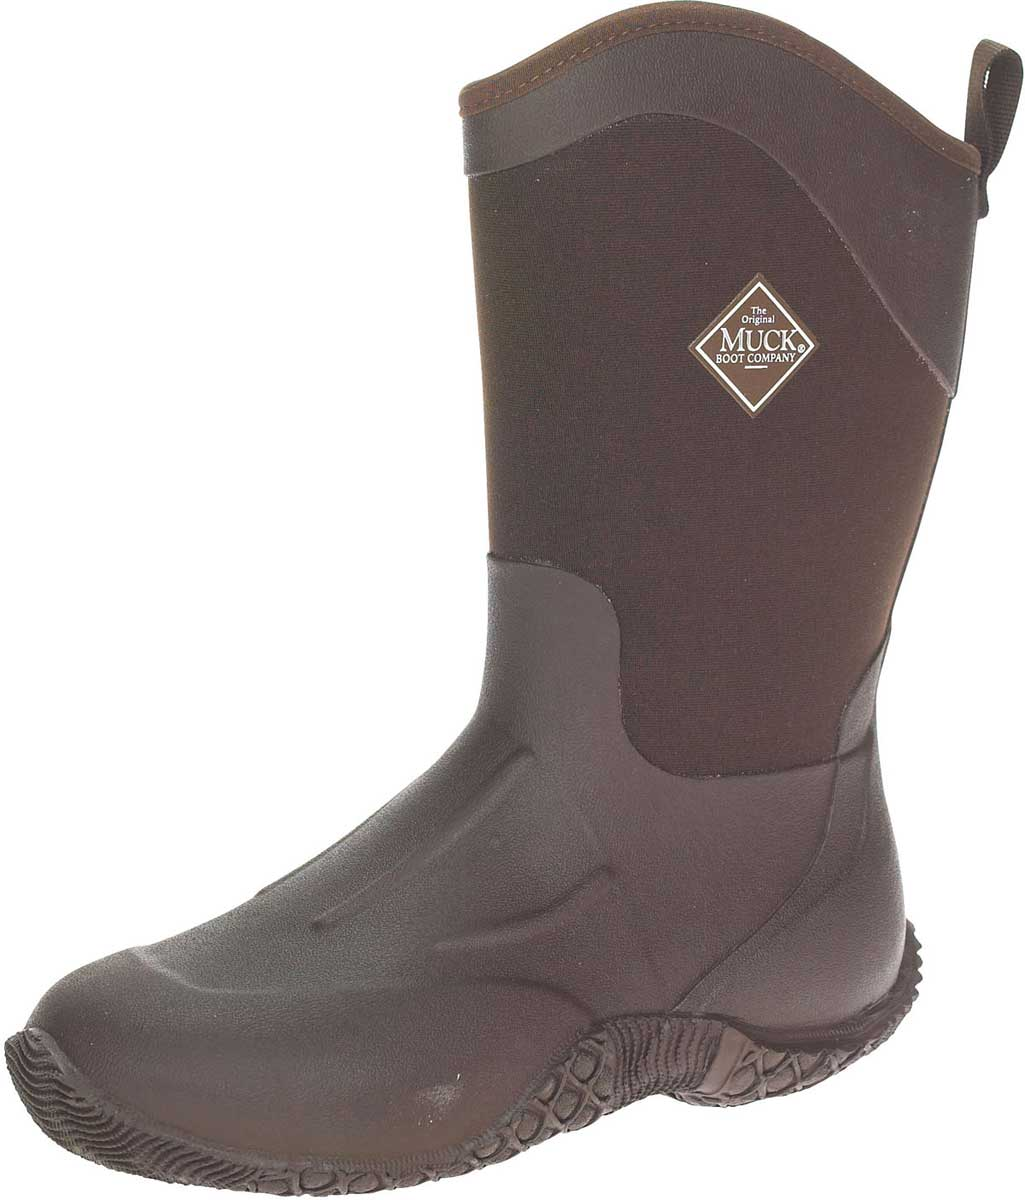 Popular Details About Muck Boot Company Womens Tack II Mid Chore Boots